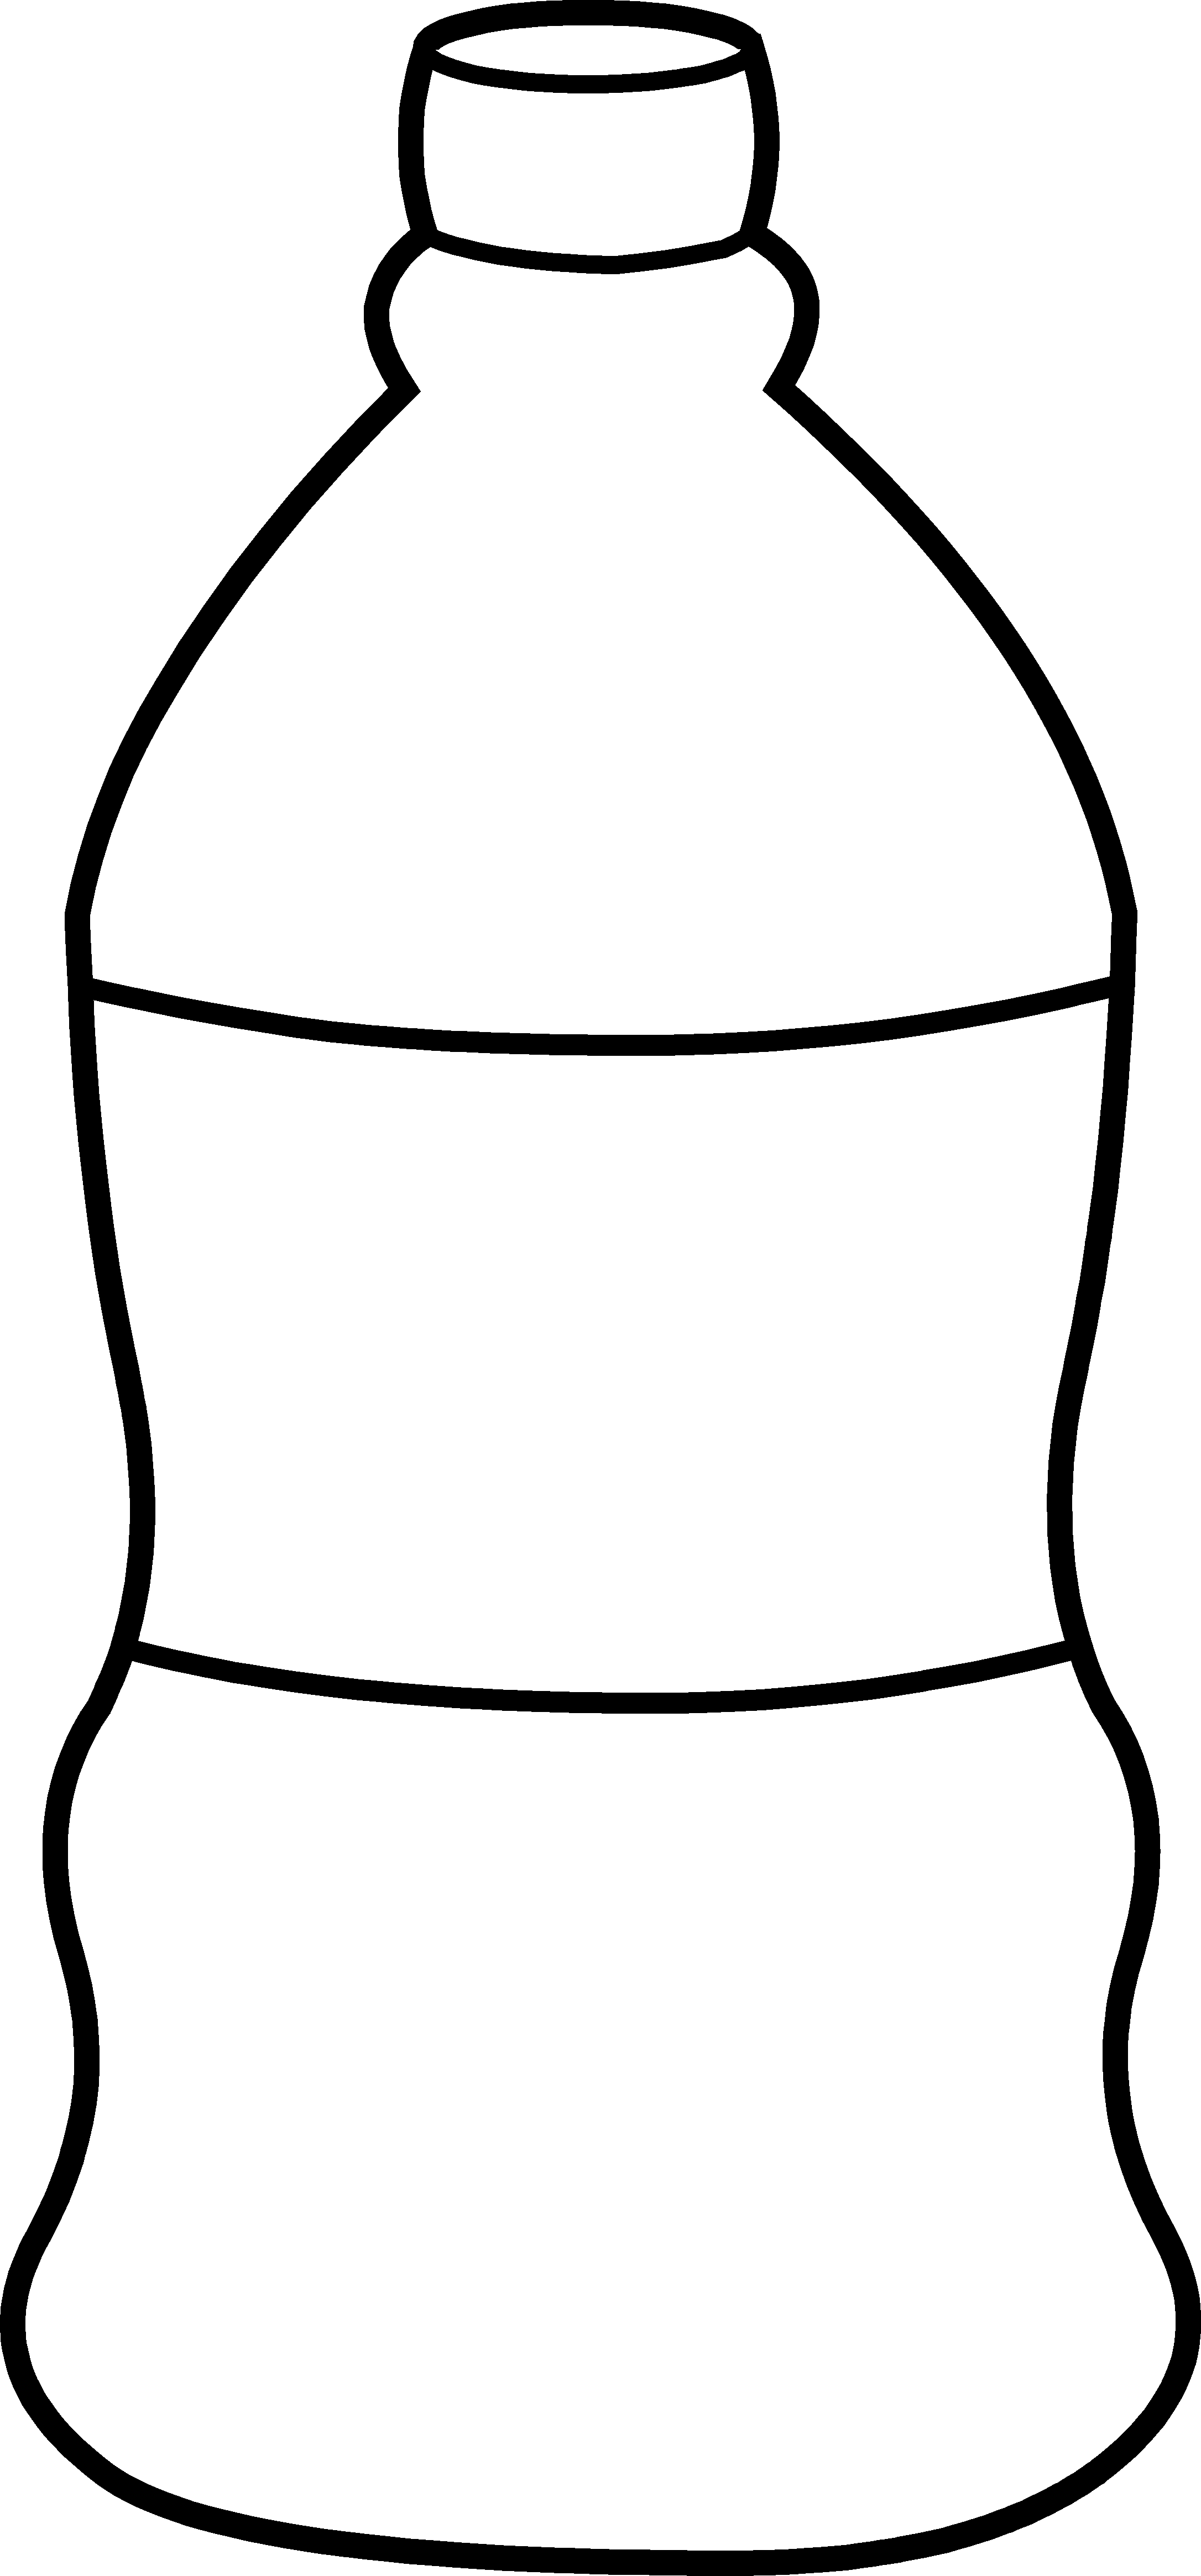 Hamster clipart bottle. Plastic cup black and